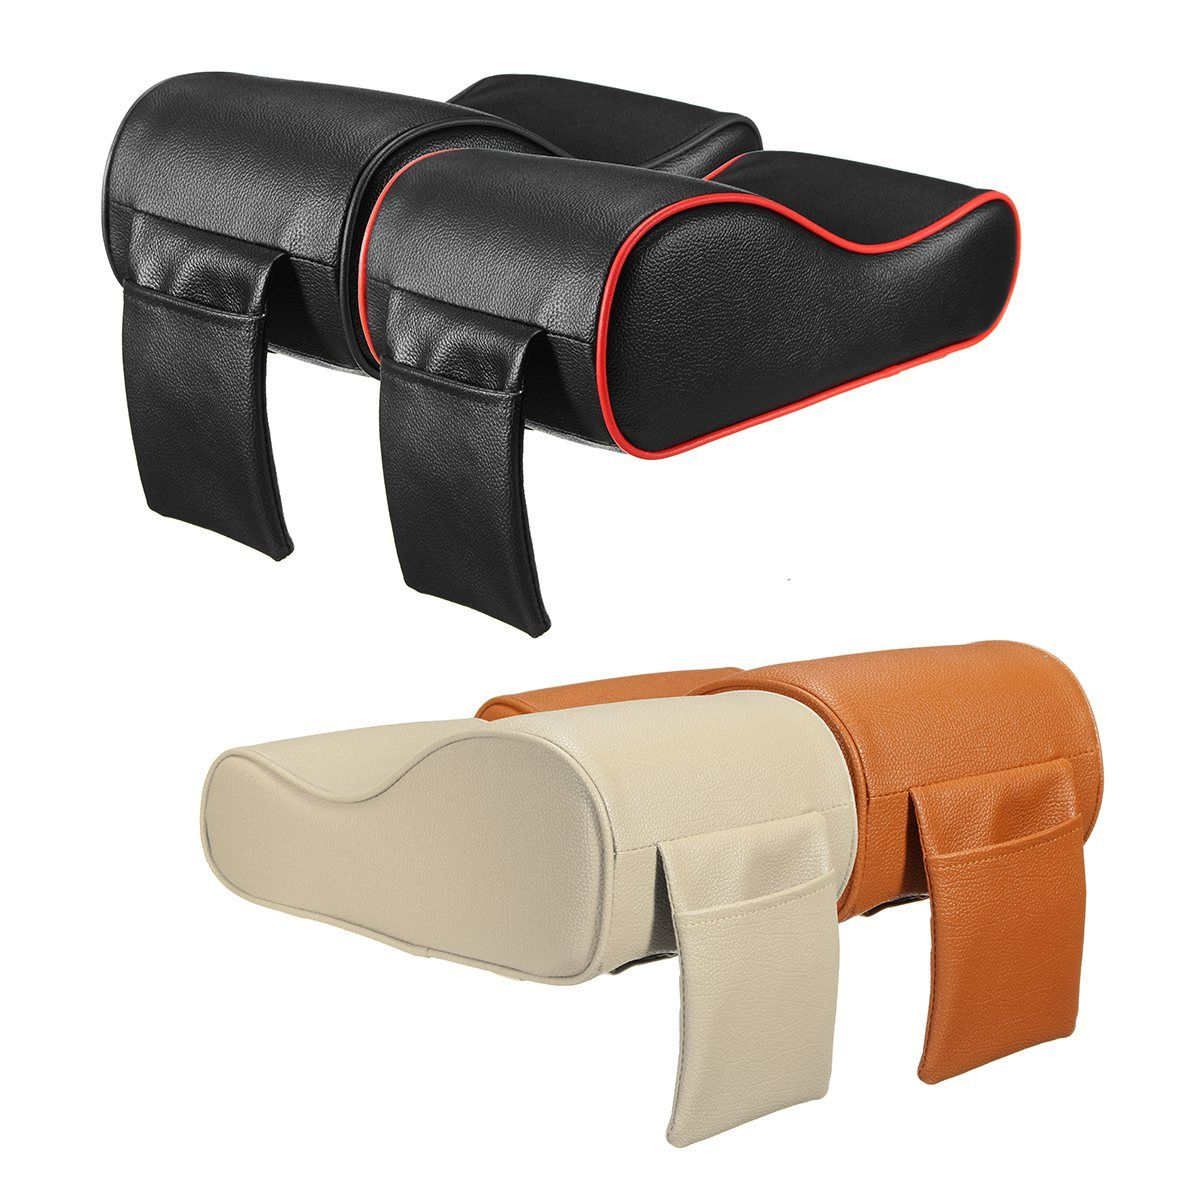 Luxury PU Leather Car SUV Center Box Armrest Cushion Console Soft Pad Cushion Cover Mat Memory Foam Rest Pillow Armrest Supports